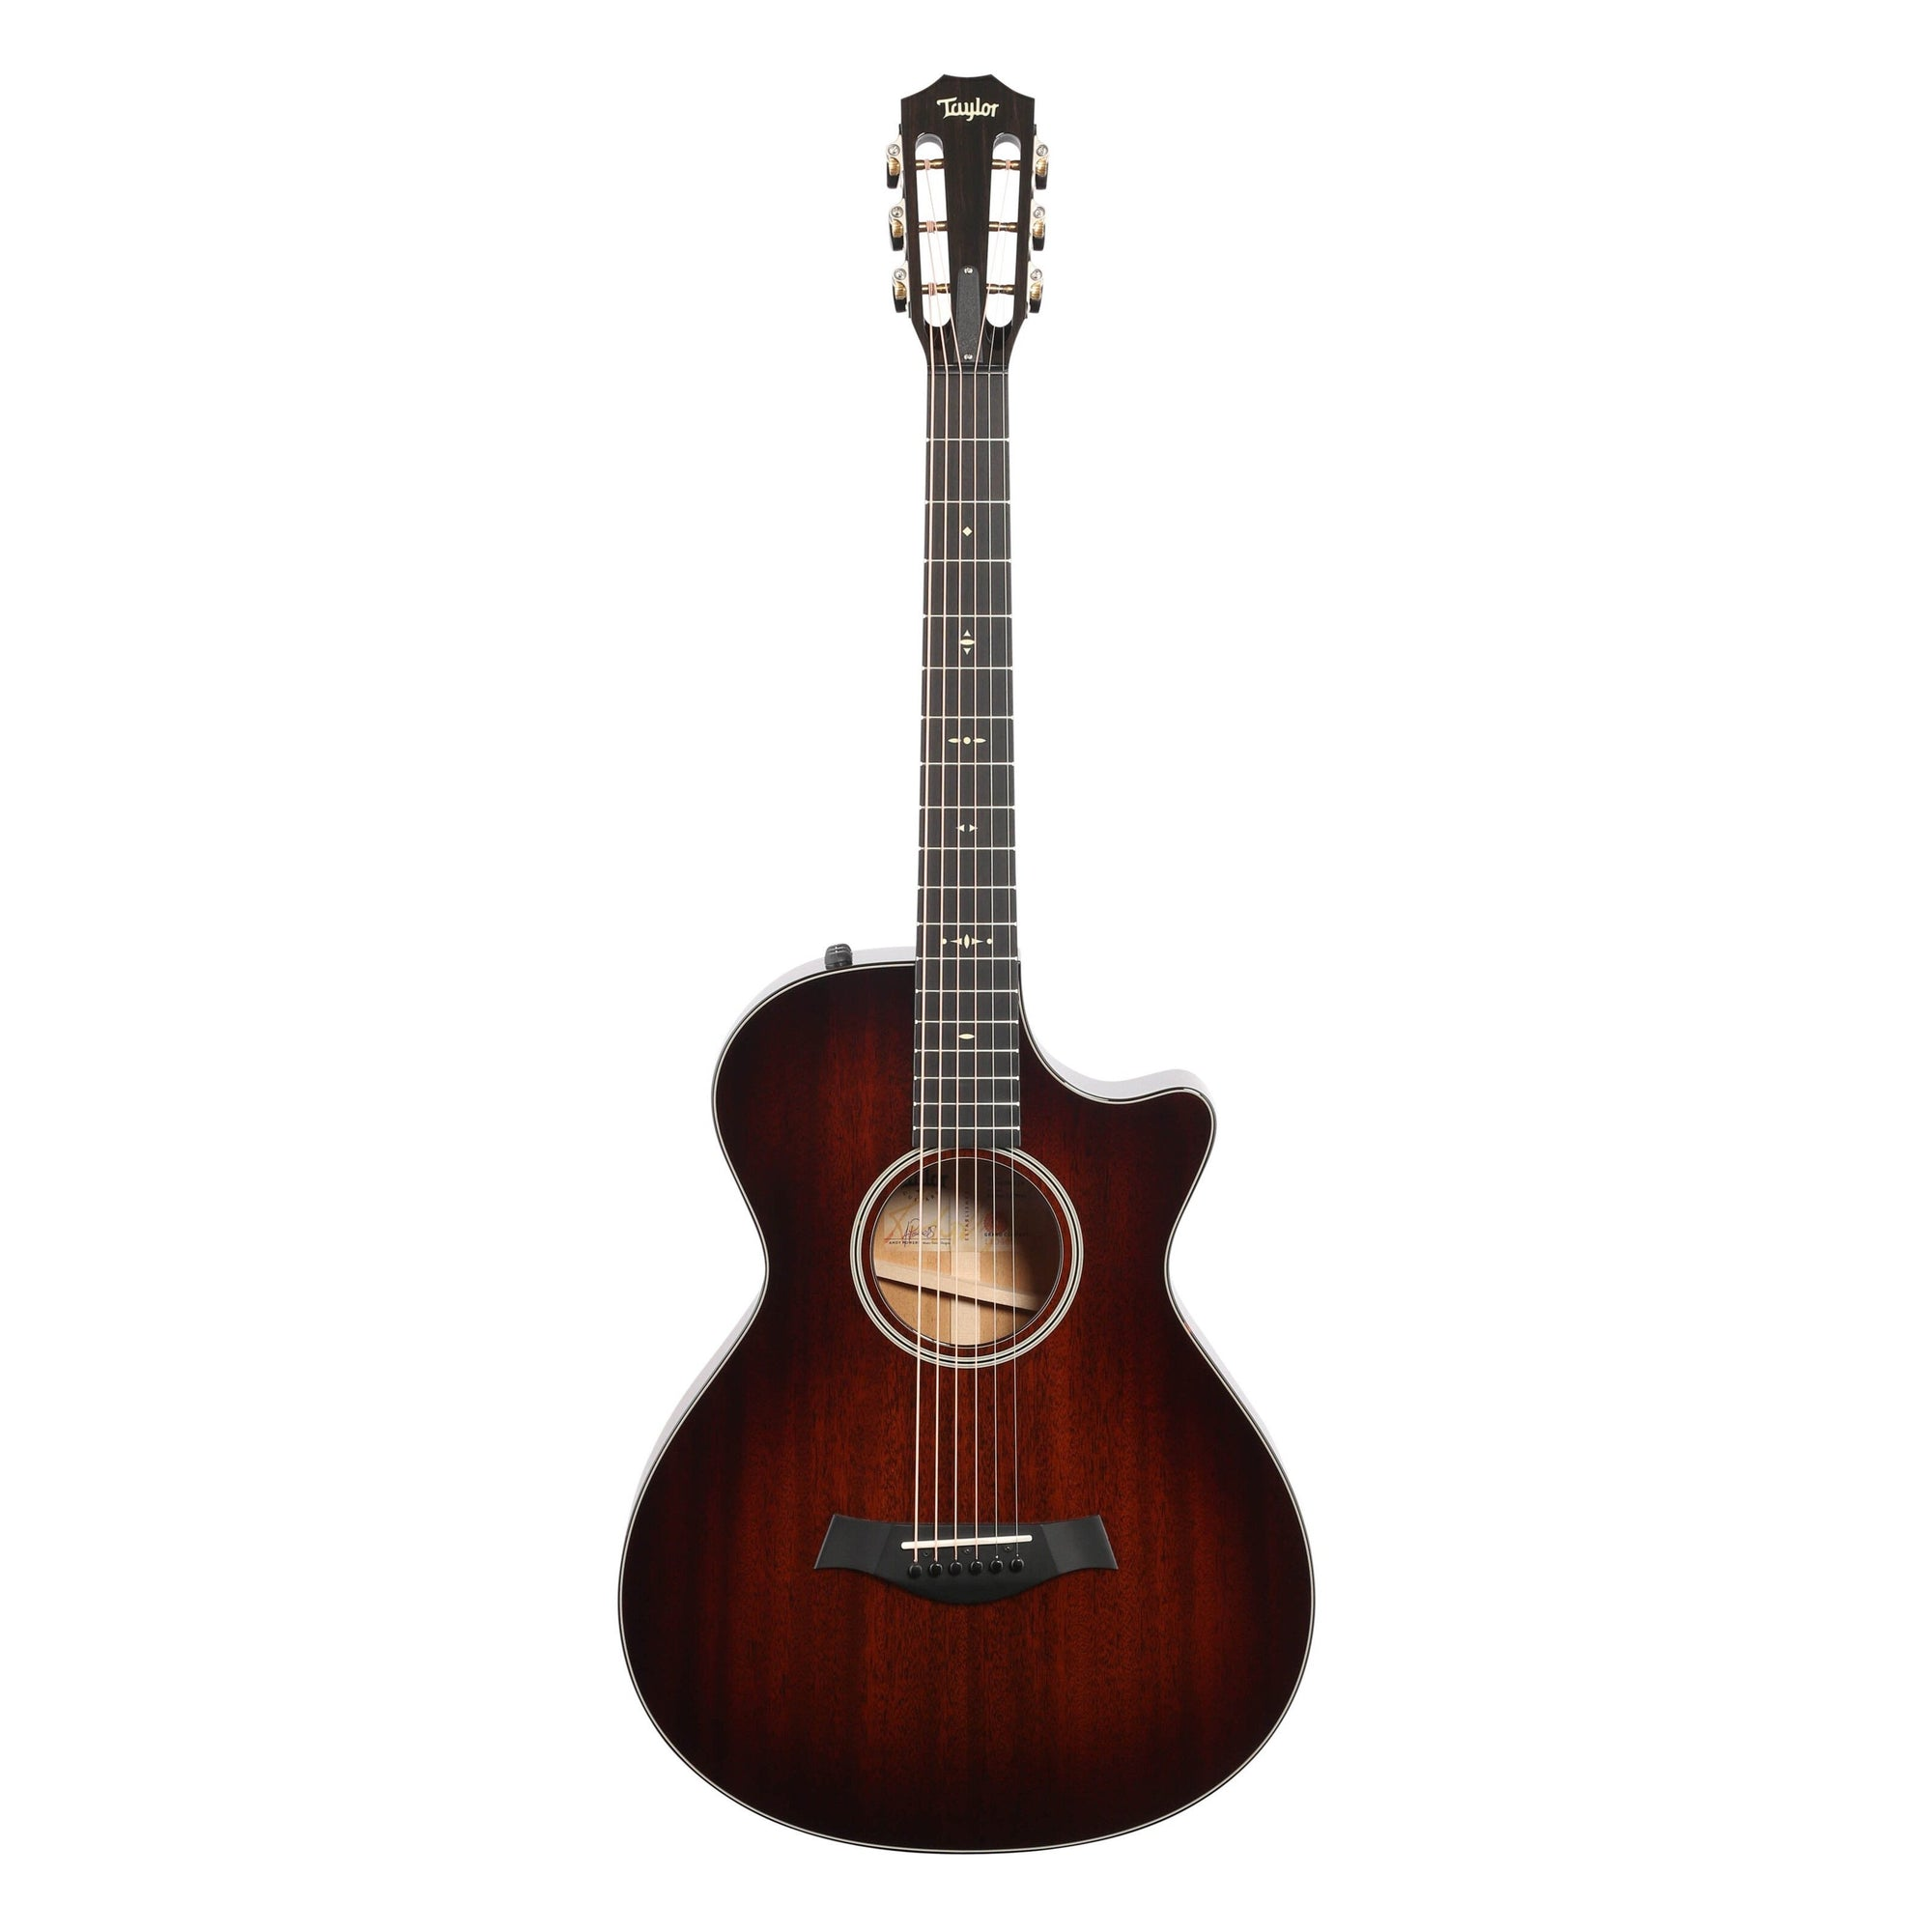 Taylor 522ceV 12-Fret Grand Cutaway Acoustic-Electric Guitar, Shaded Edge Burst